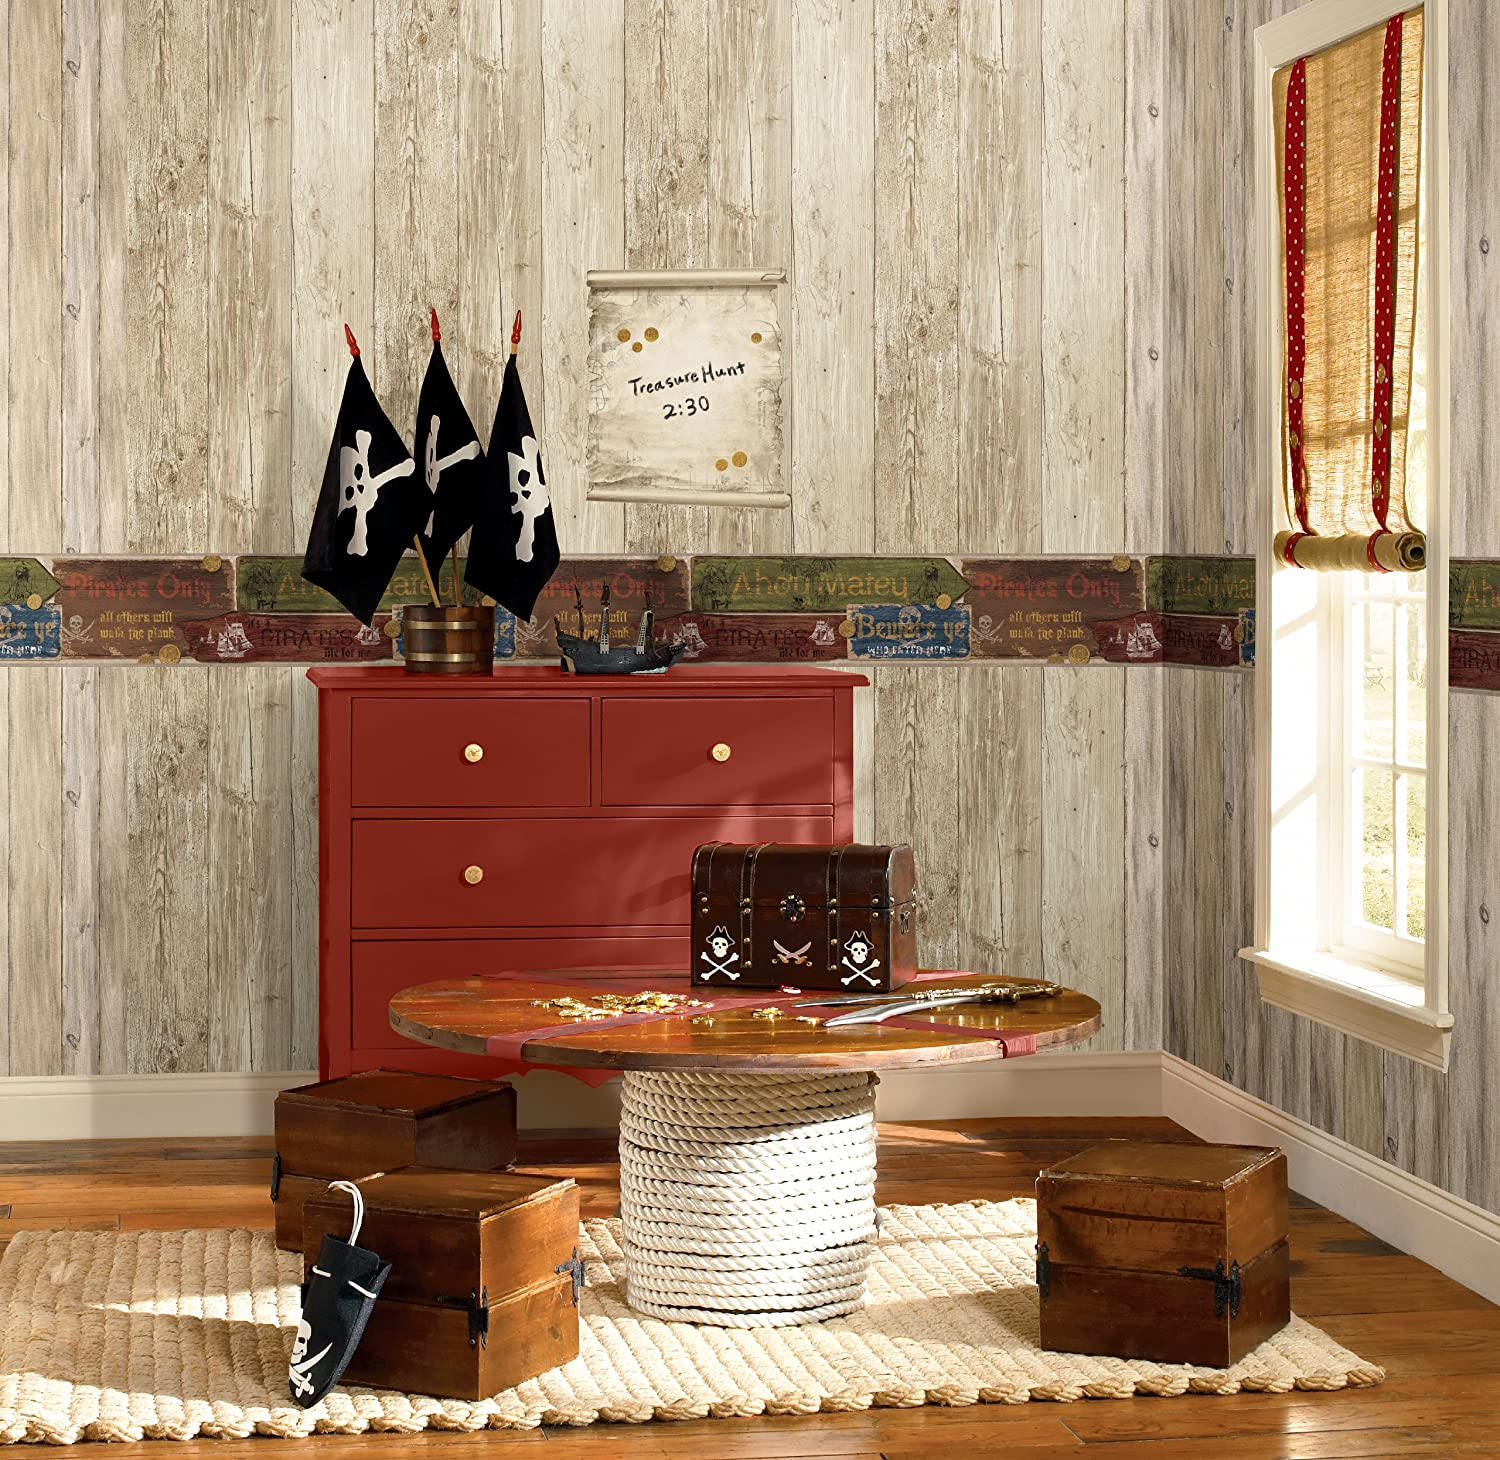 Wall In A Box Wib1008 Pirate Wallpaper Ash Pine Oak Sand Beige Bathroom Faucet Parts Diagram Hd Walls Find Wallpapers Brown Aged Map Decal